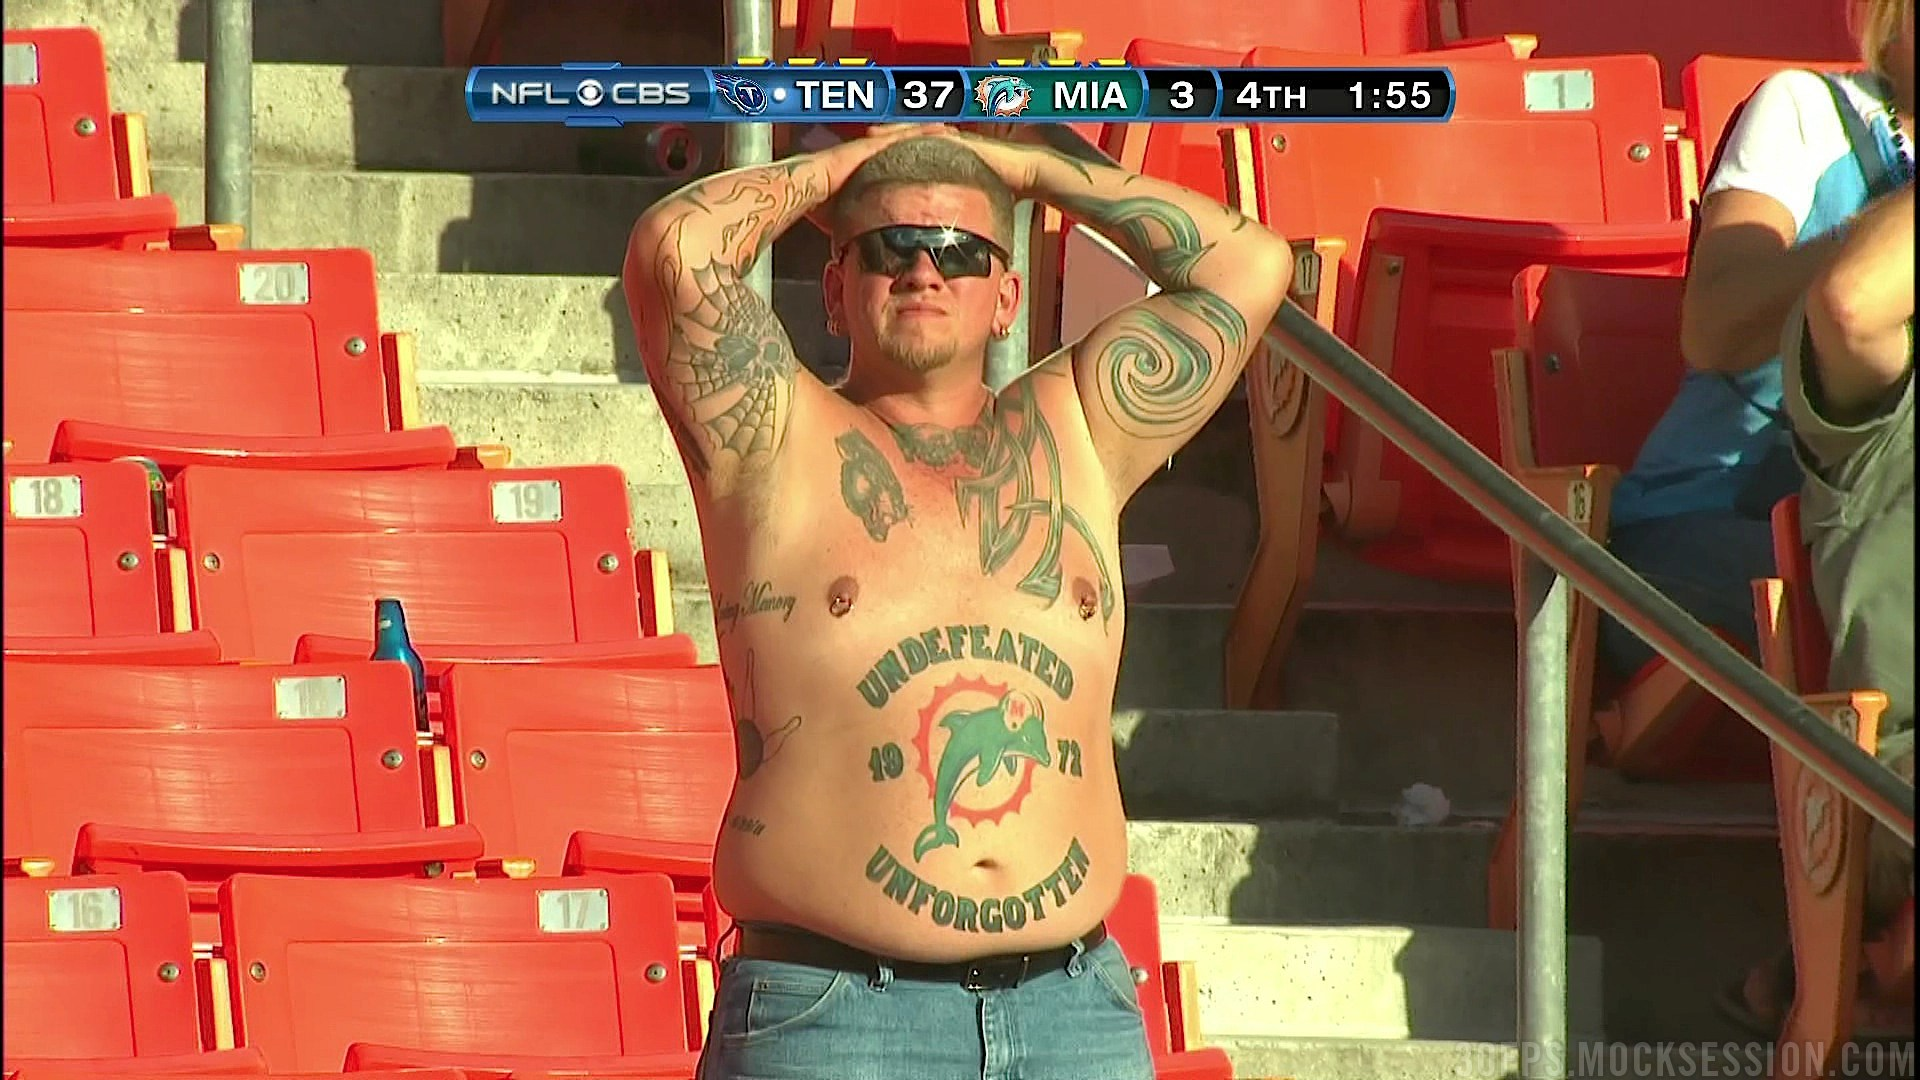 Go Home, Everybody: We Found The Most Ridiculous Fan In The Wor…